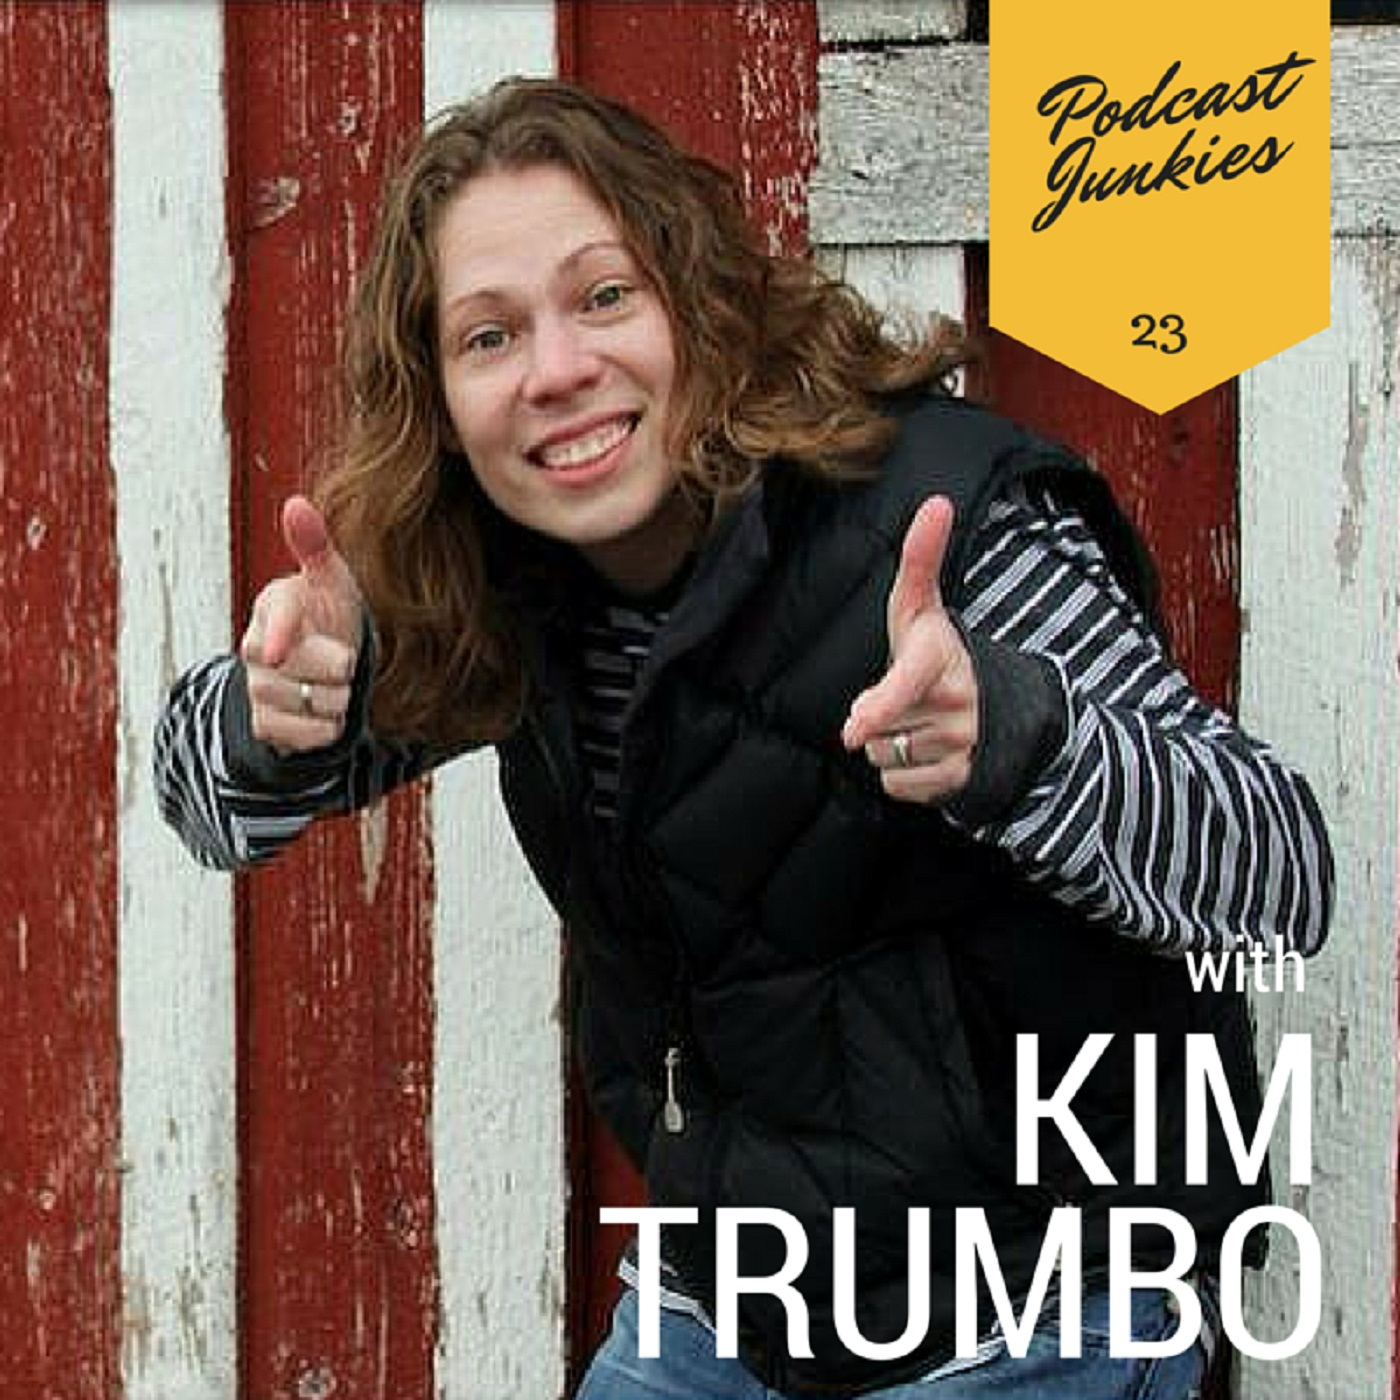 023 Kim Trumbo | A Chance Inspiration While Mowing the Lawn Spawns A Podcast